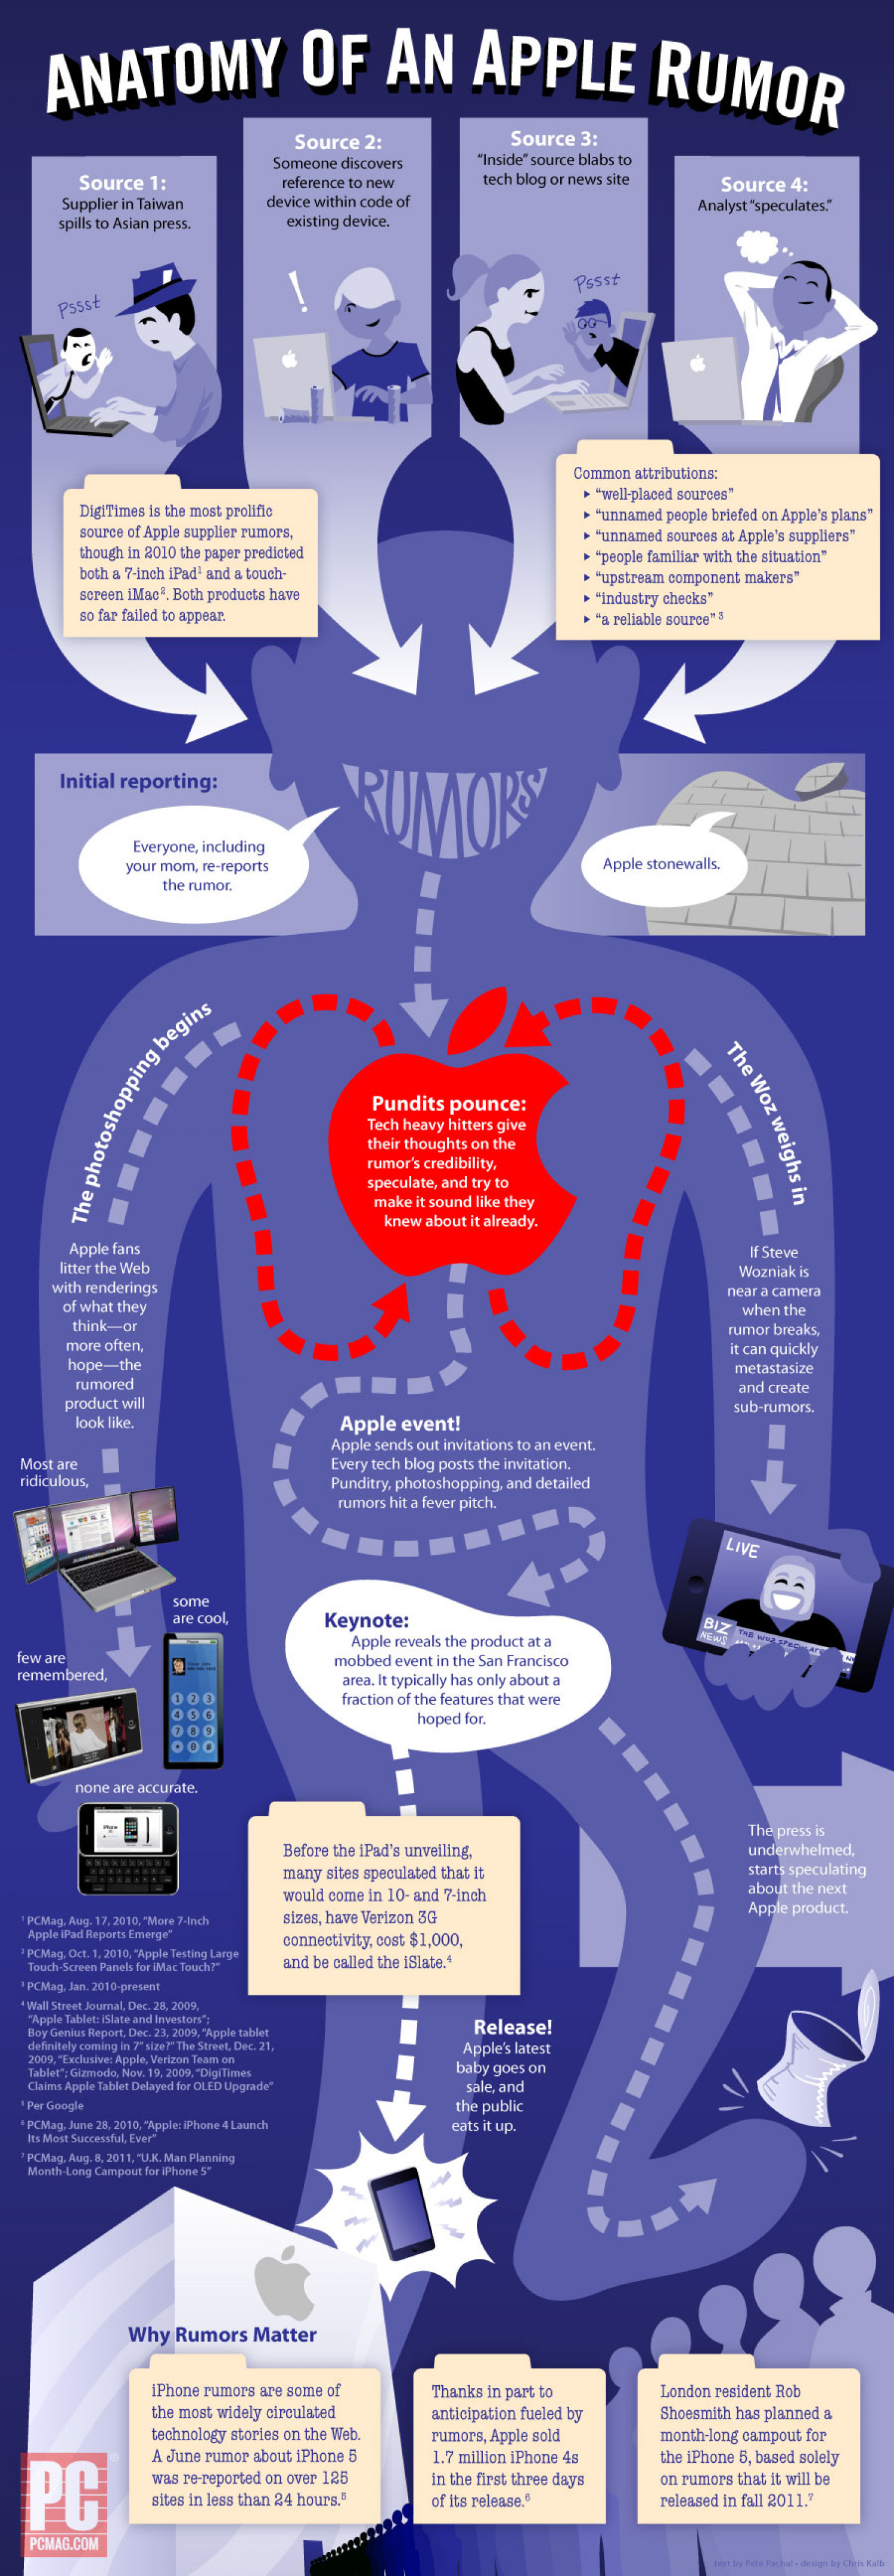 Apple rumors explained Infographic